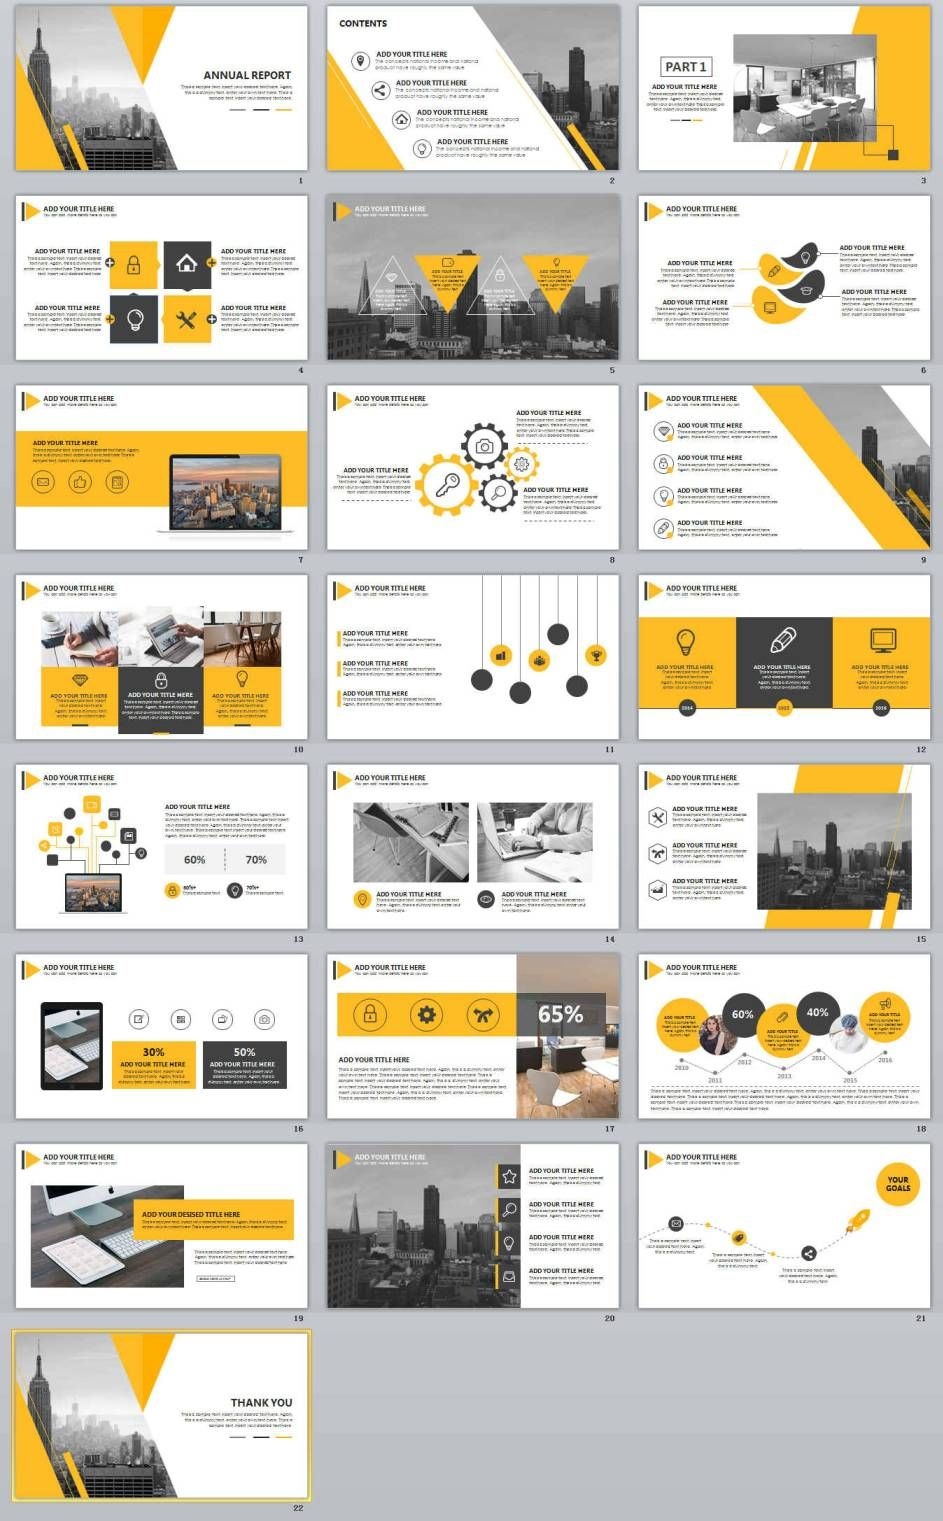 22 annual report creative powerpoint template powerpoint 22 annual report creative powerpoint template powerpoint templates and keynote templates toneelgroepblik Choice Image